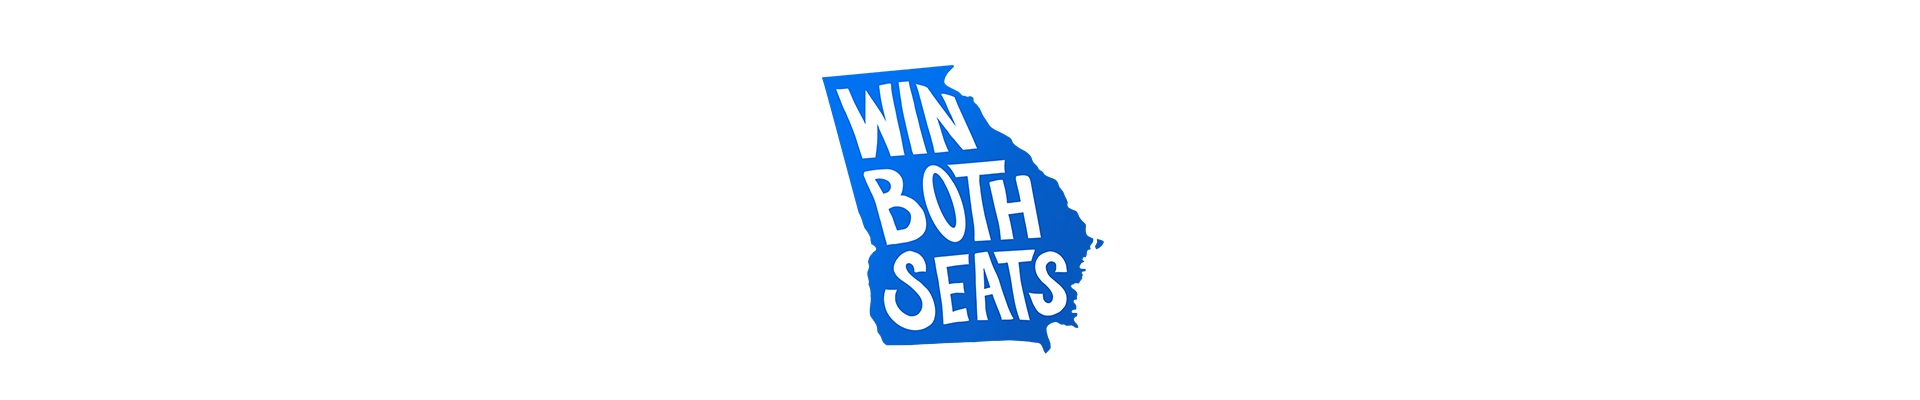 Win Both Seats